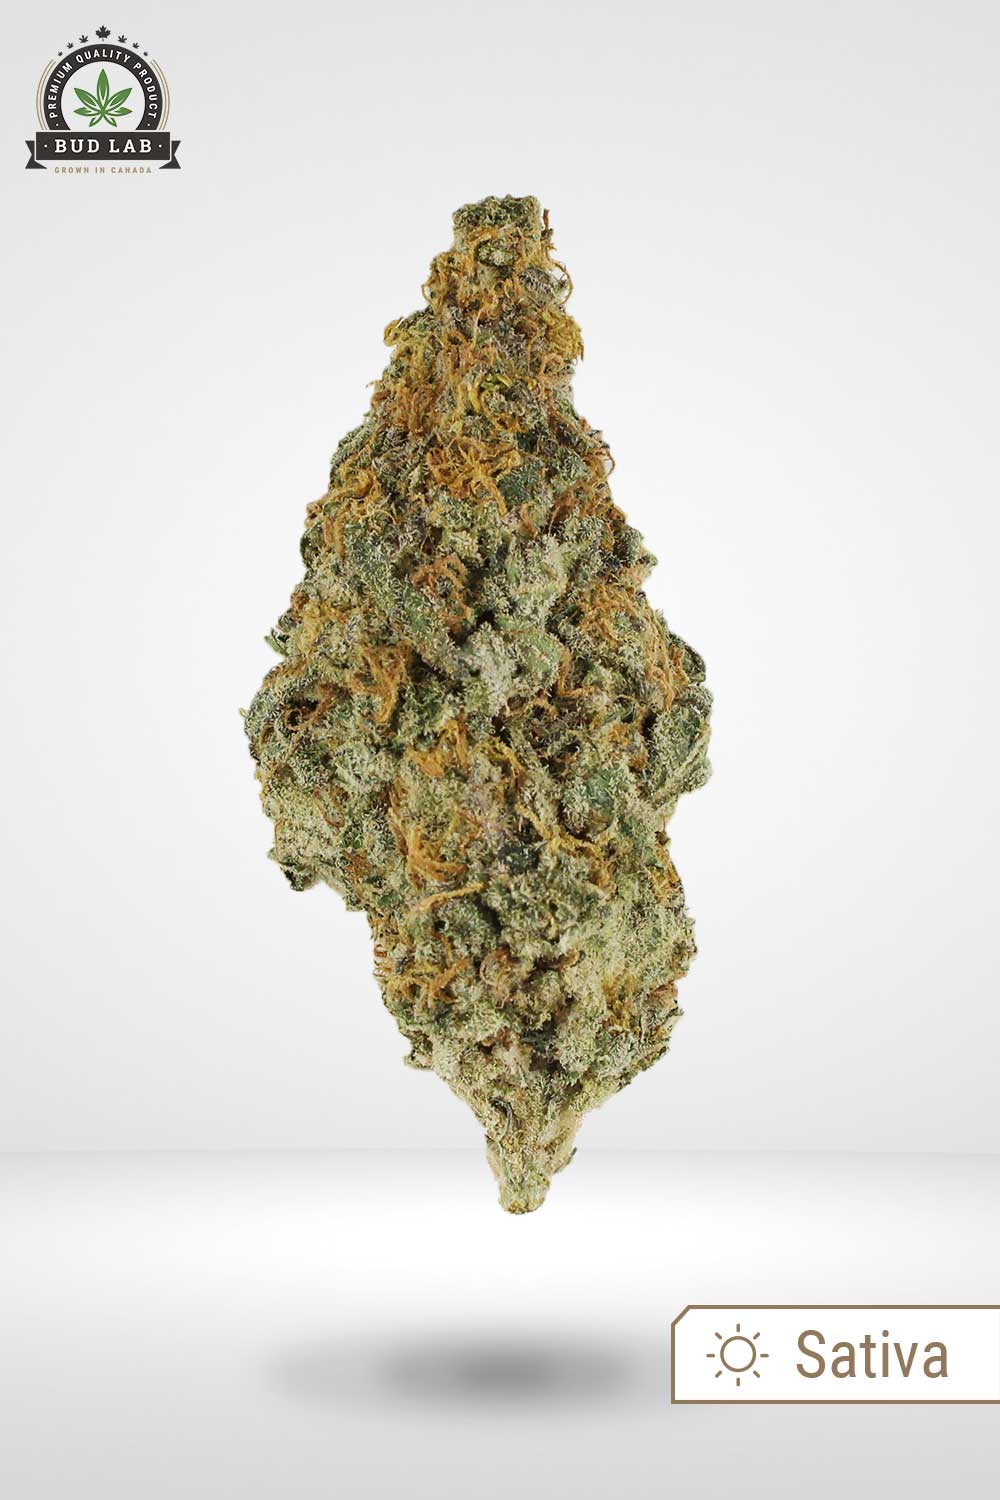 Lemon Haze Sativa Strain Bud Lab Front View